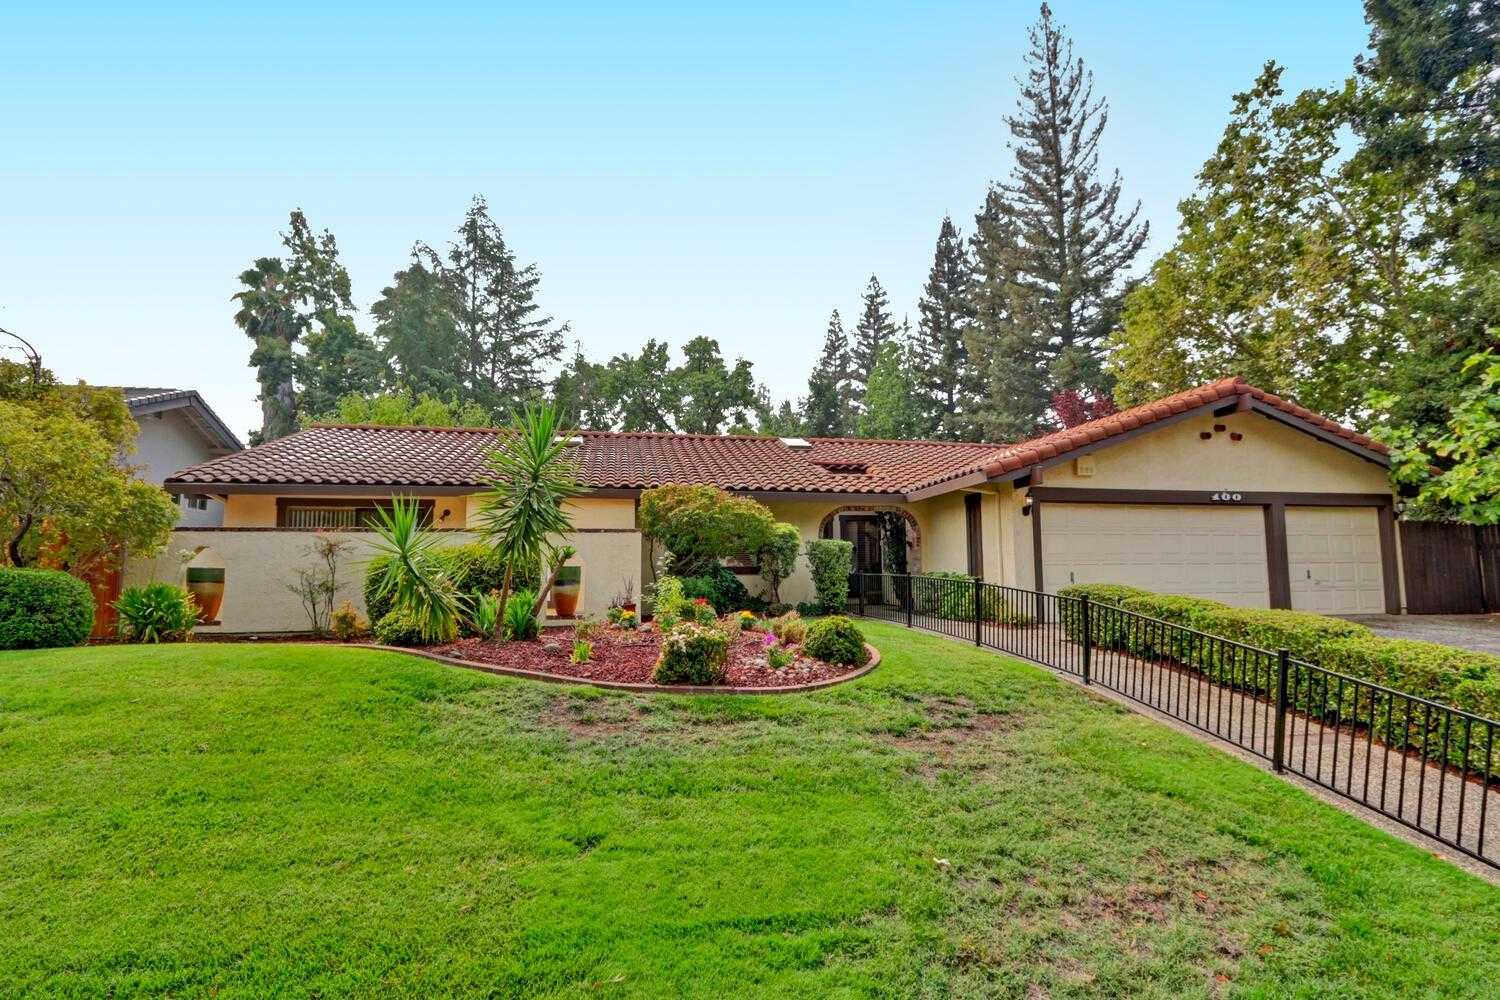 $650,000 - 3Br/3Ba -  for Sale in Folsom